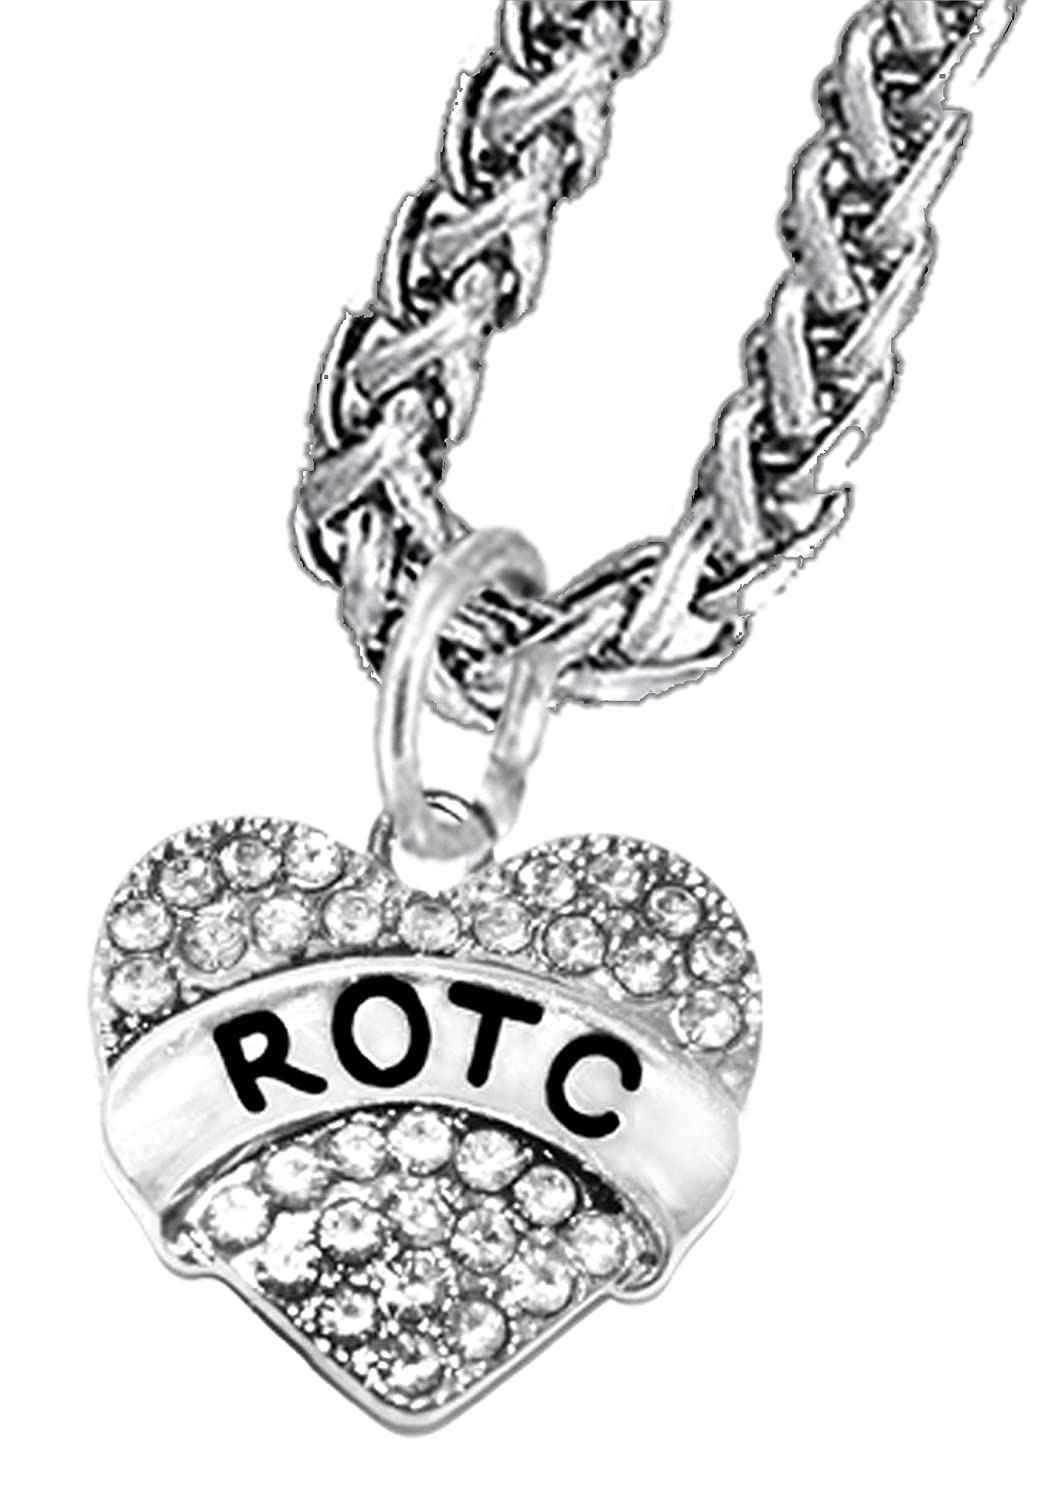 Lead and Cadmium Free Hypoallergenic Safe-Nickel Cardinali Jewelry ROTC,Beautiful Antique Wheat Chain Necklace